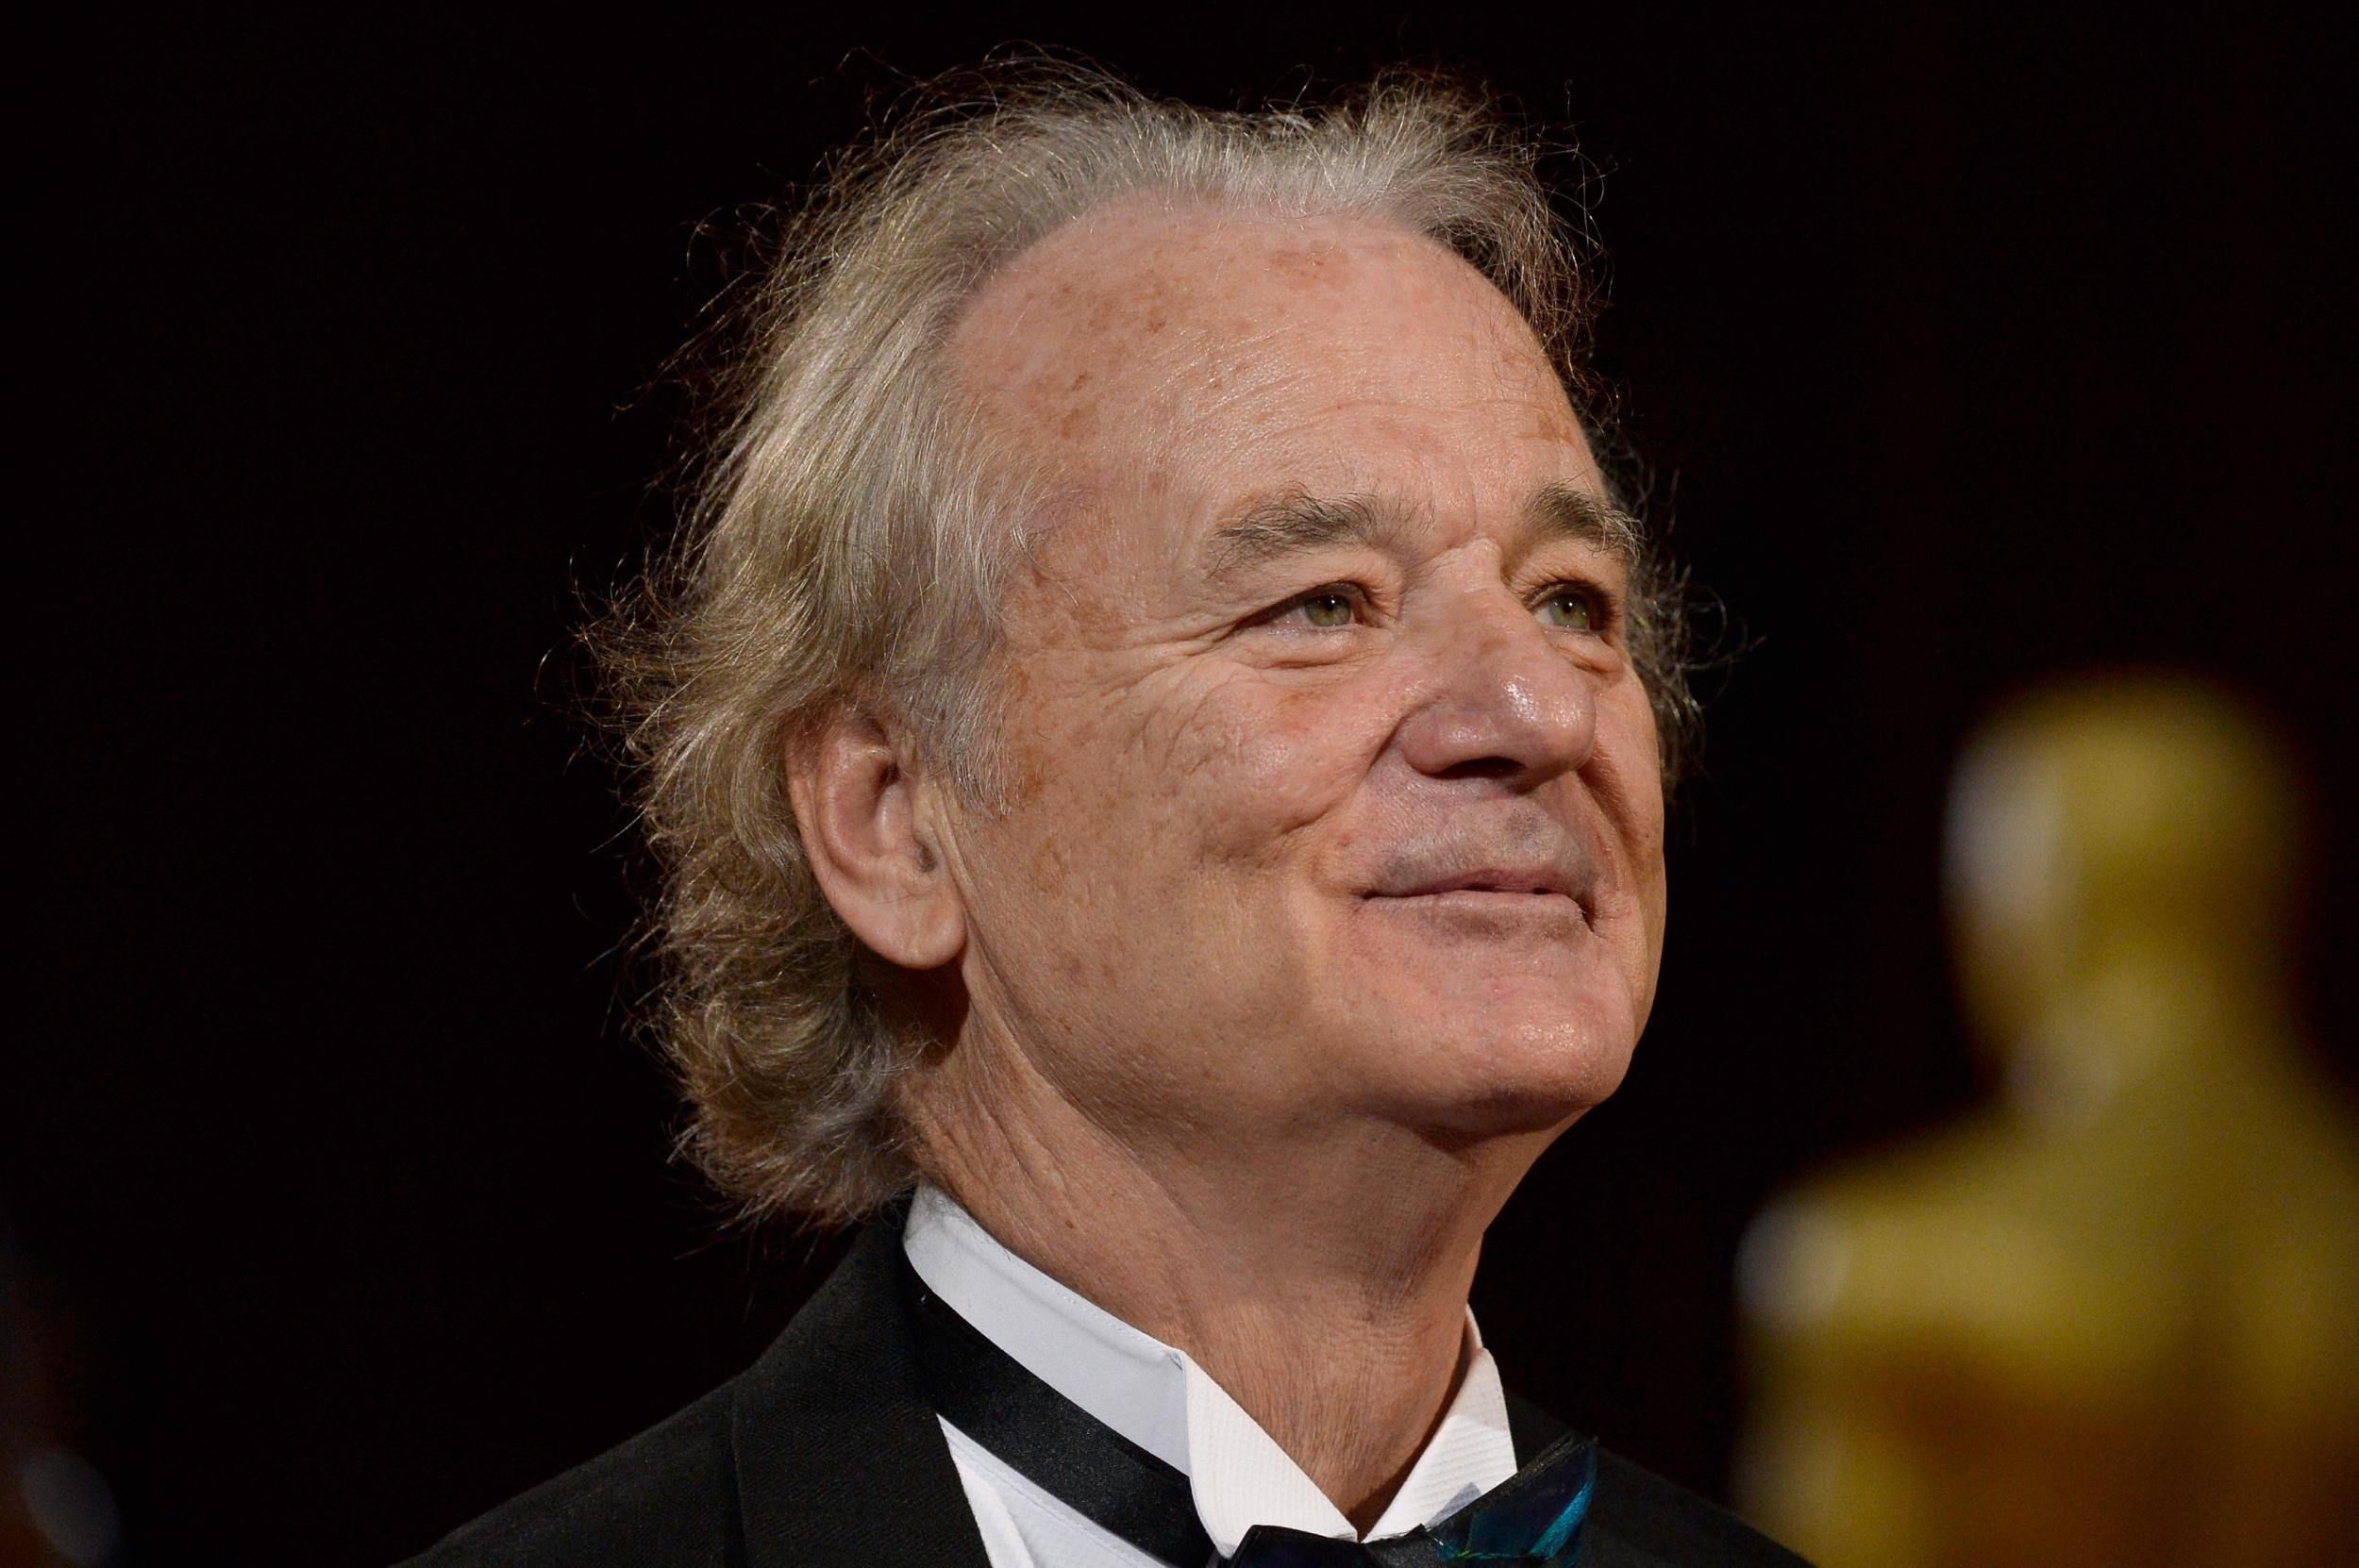 Bill Murray slept through a press conference celebrating his lifetime achievement award at Rome Film Fest